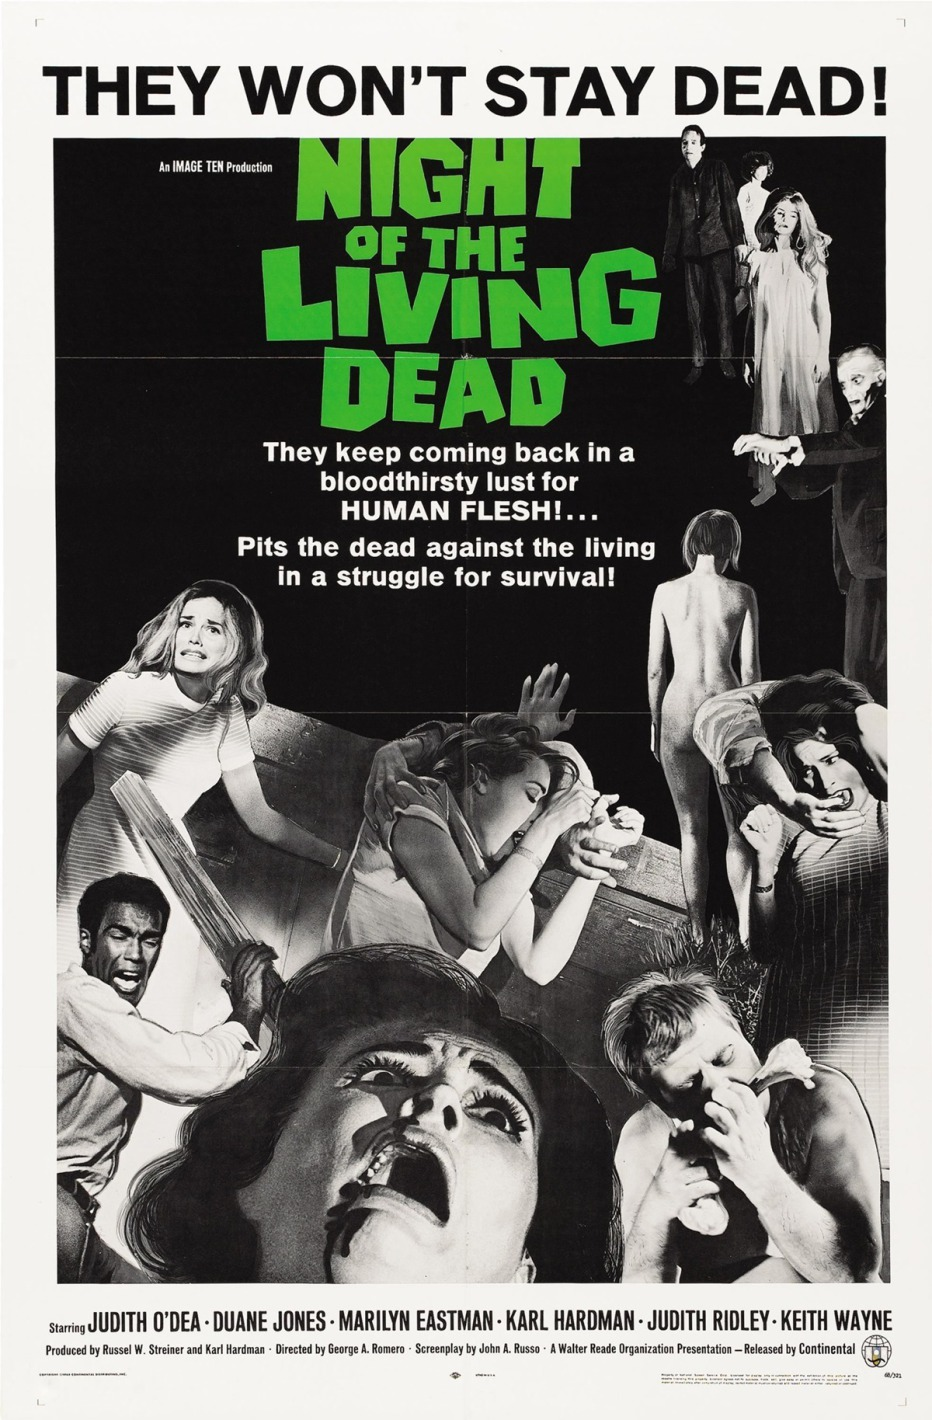 la-notte-dei-morti-viventi-night-of-living-dead-1968-george-a-romero-32.jpg